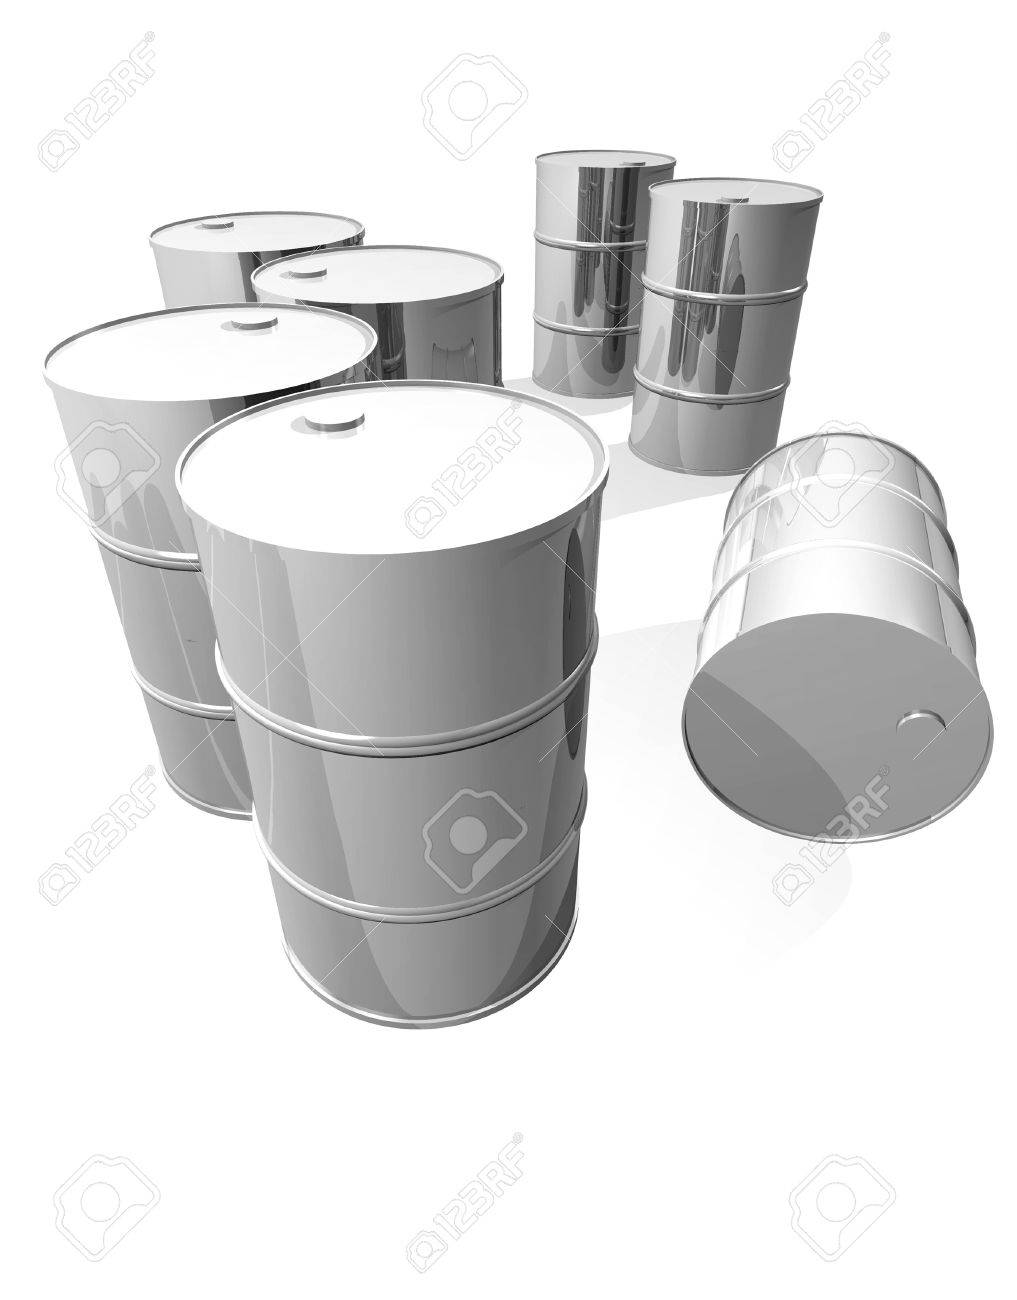 Clean metal drums isolated on white - 11697134